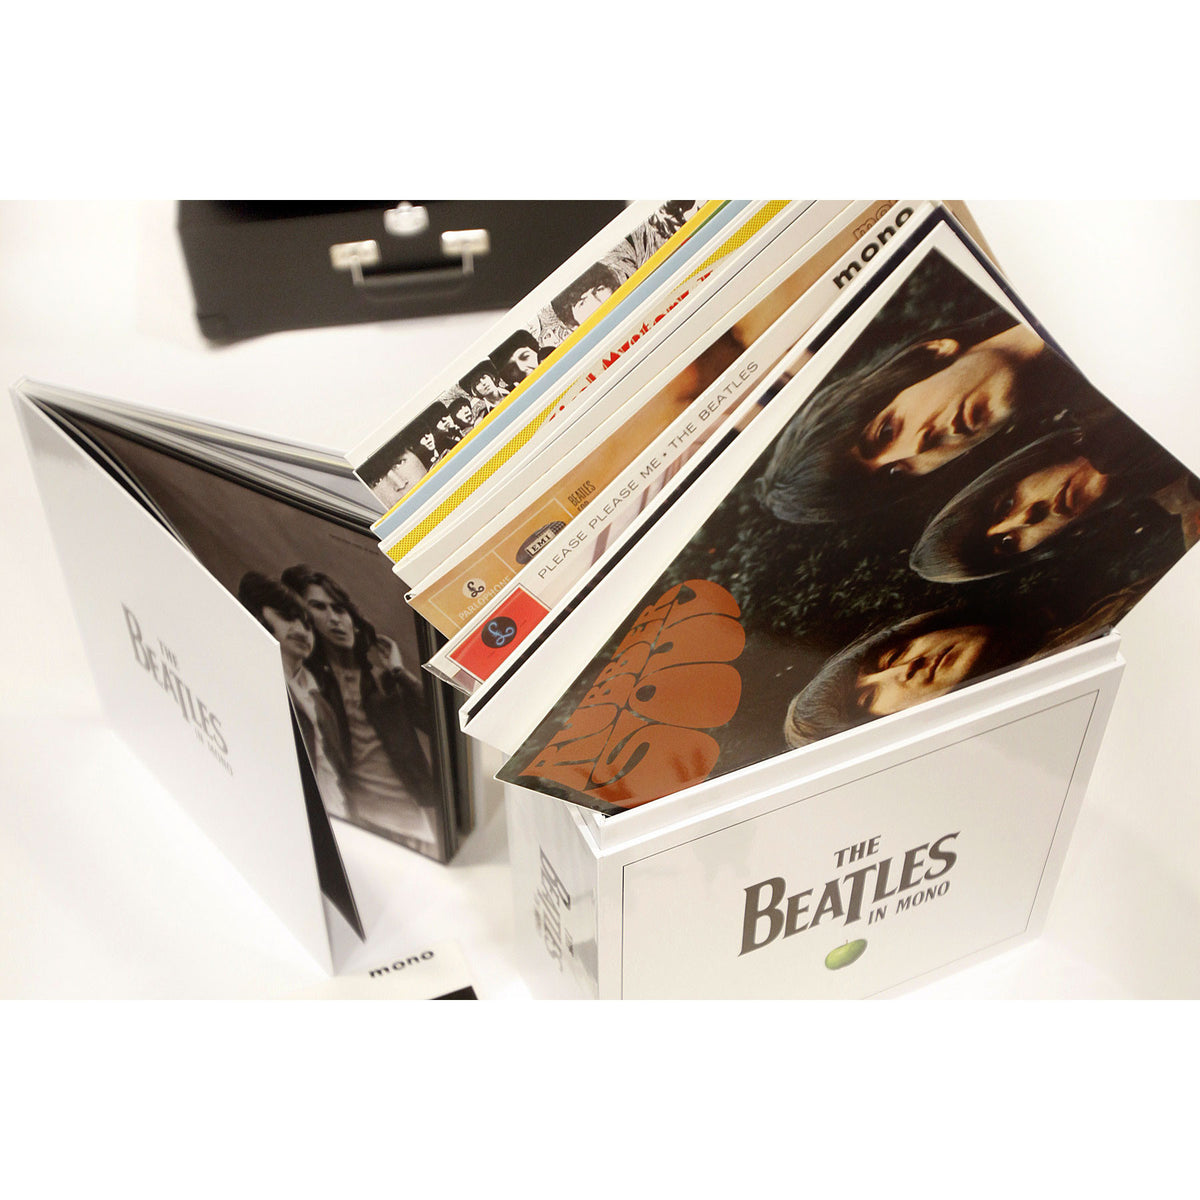 The Beatles: The Beatles In Mono Vinyl 14LP Box Set detail